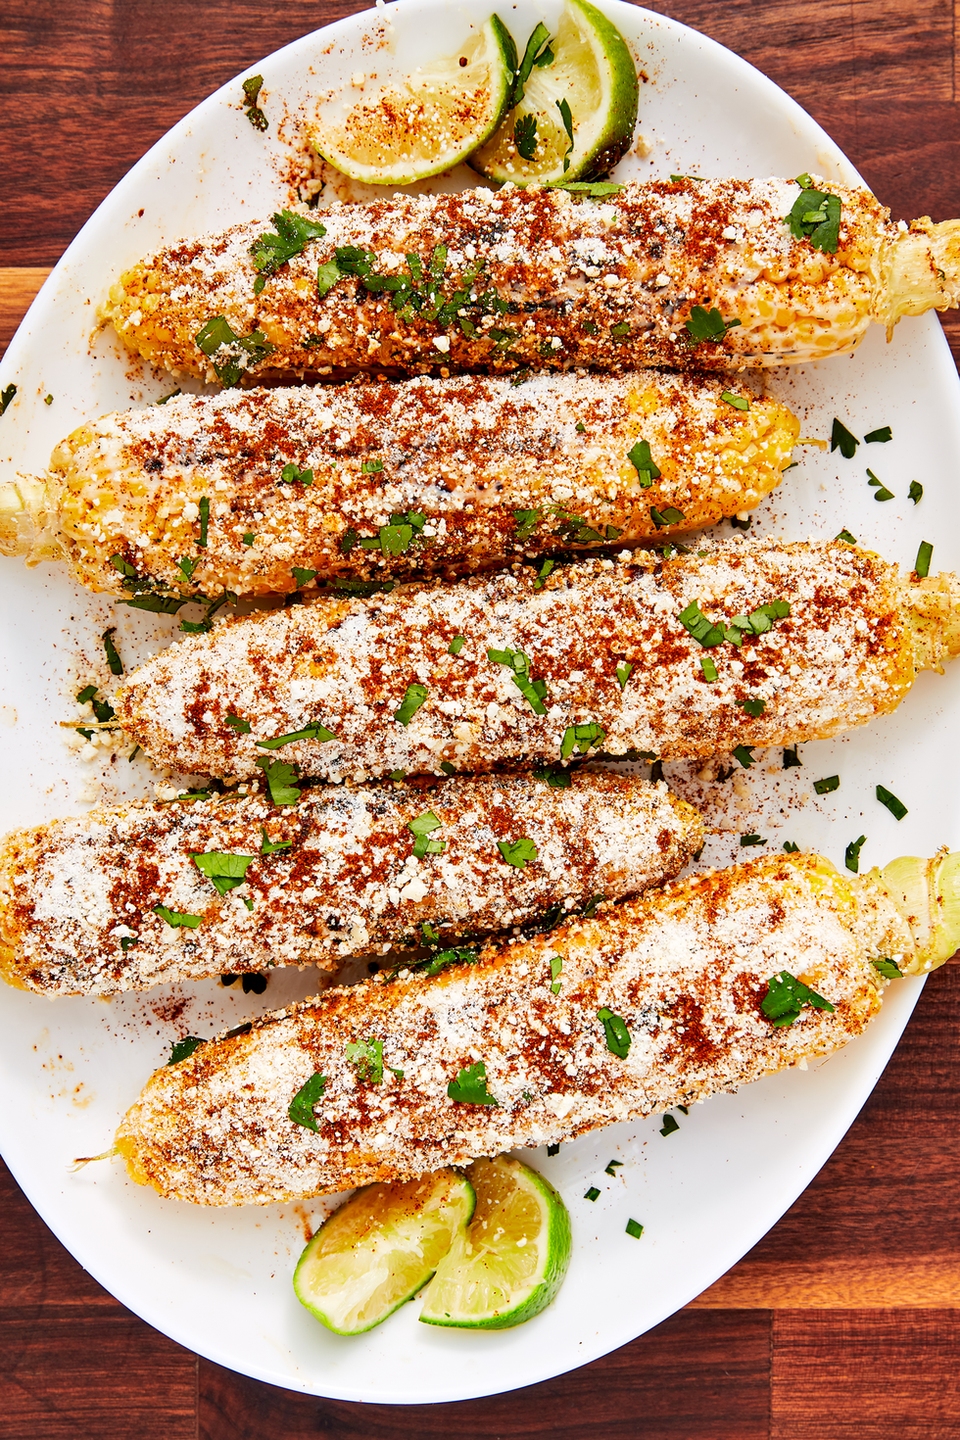 """<p>Meet your new favorite way to eat corn: Roasted over an open grill, then slathered with cojita cheese, chili powder, lime juice, and mayonnaise.</p><p><em><a href=""""https://www.delish.com/cooking/recipe-ideas/recipes/a47269/mexican-street-corn-elote-recipe/"""" rel=""""nofollow noopener"""" target=""""_blank"""" data-ylk=""""slk:Get the recipe from Delish »"""" class=""""link rapid-noclick-resp"""">Get the recipe from Delish »</a></em></p>"""